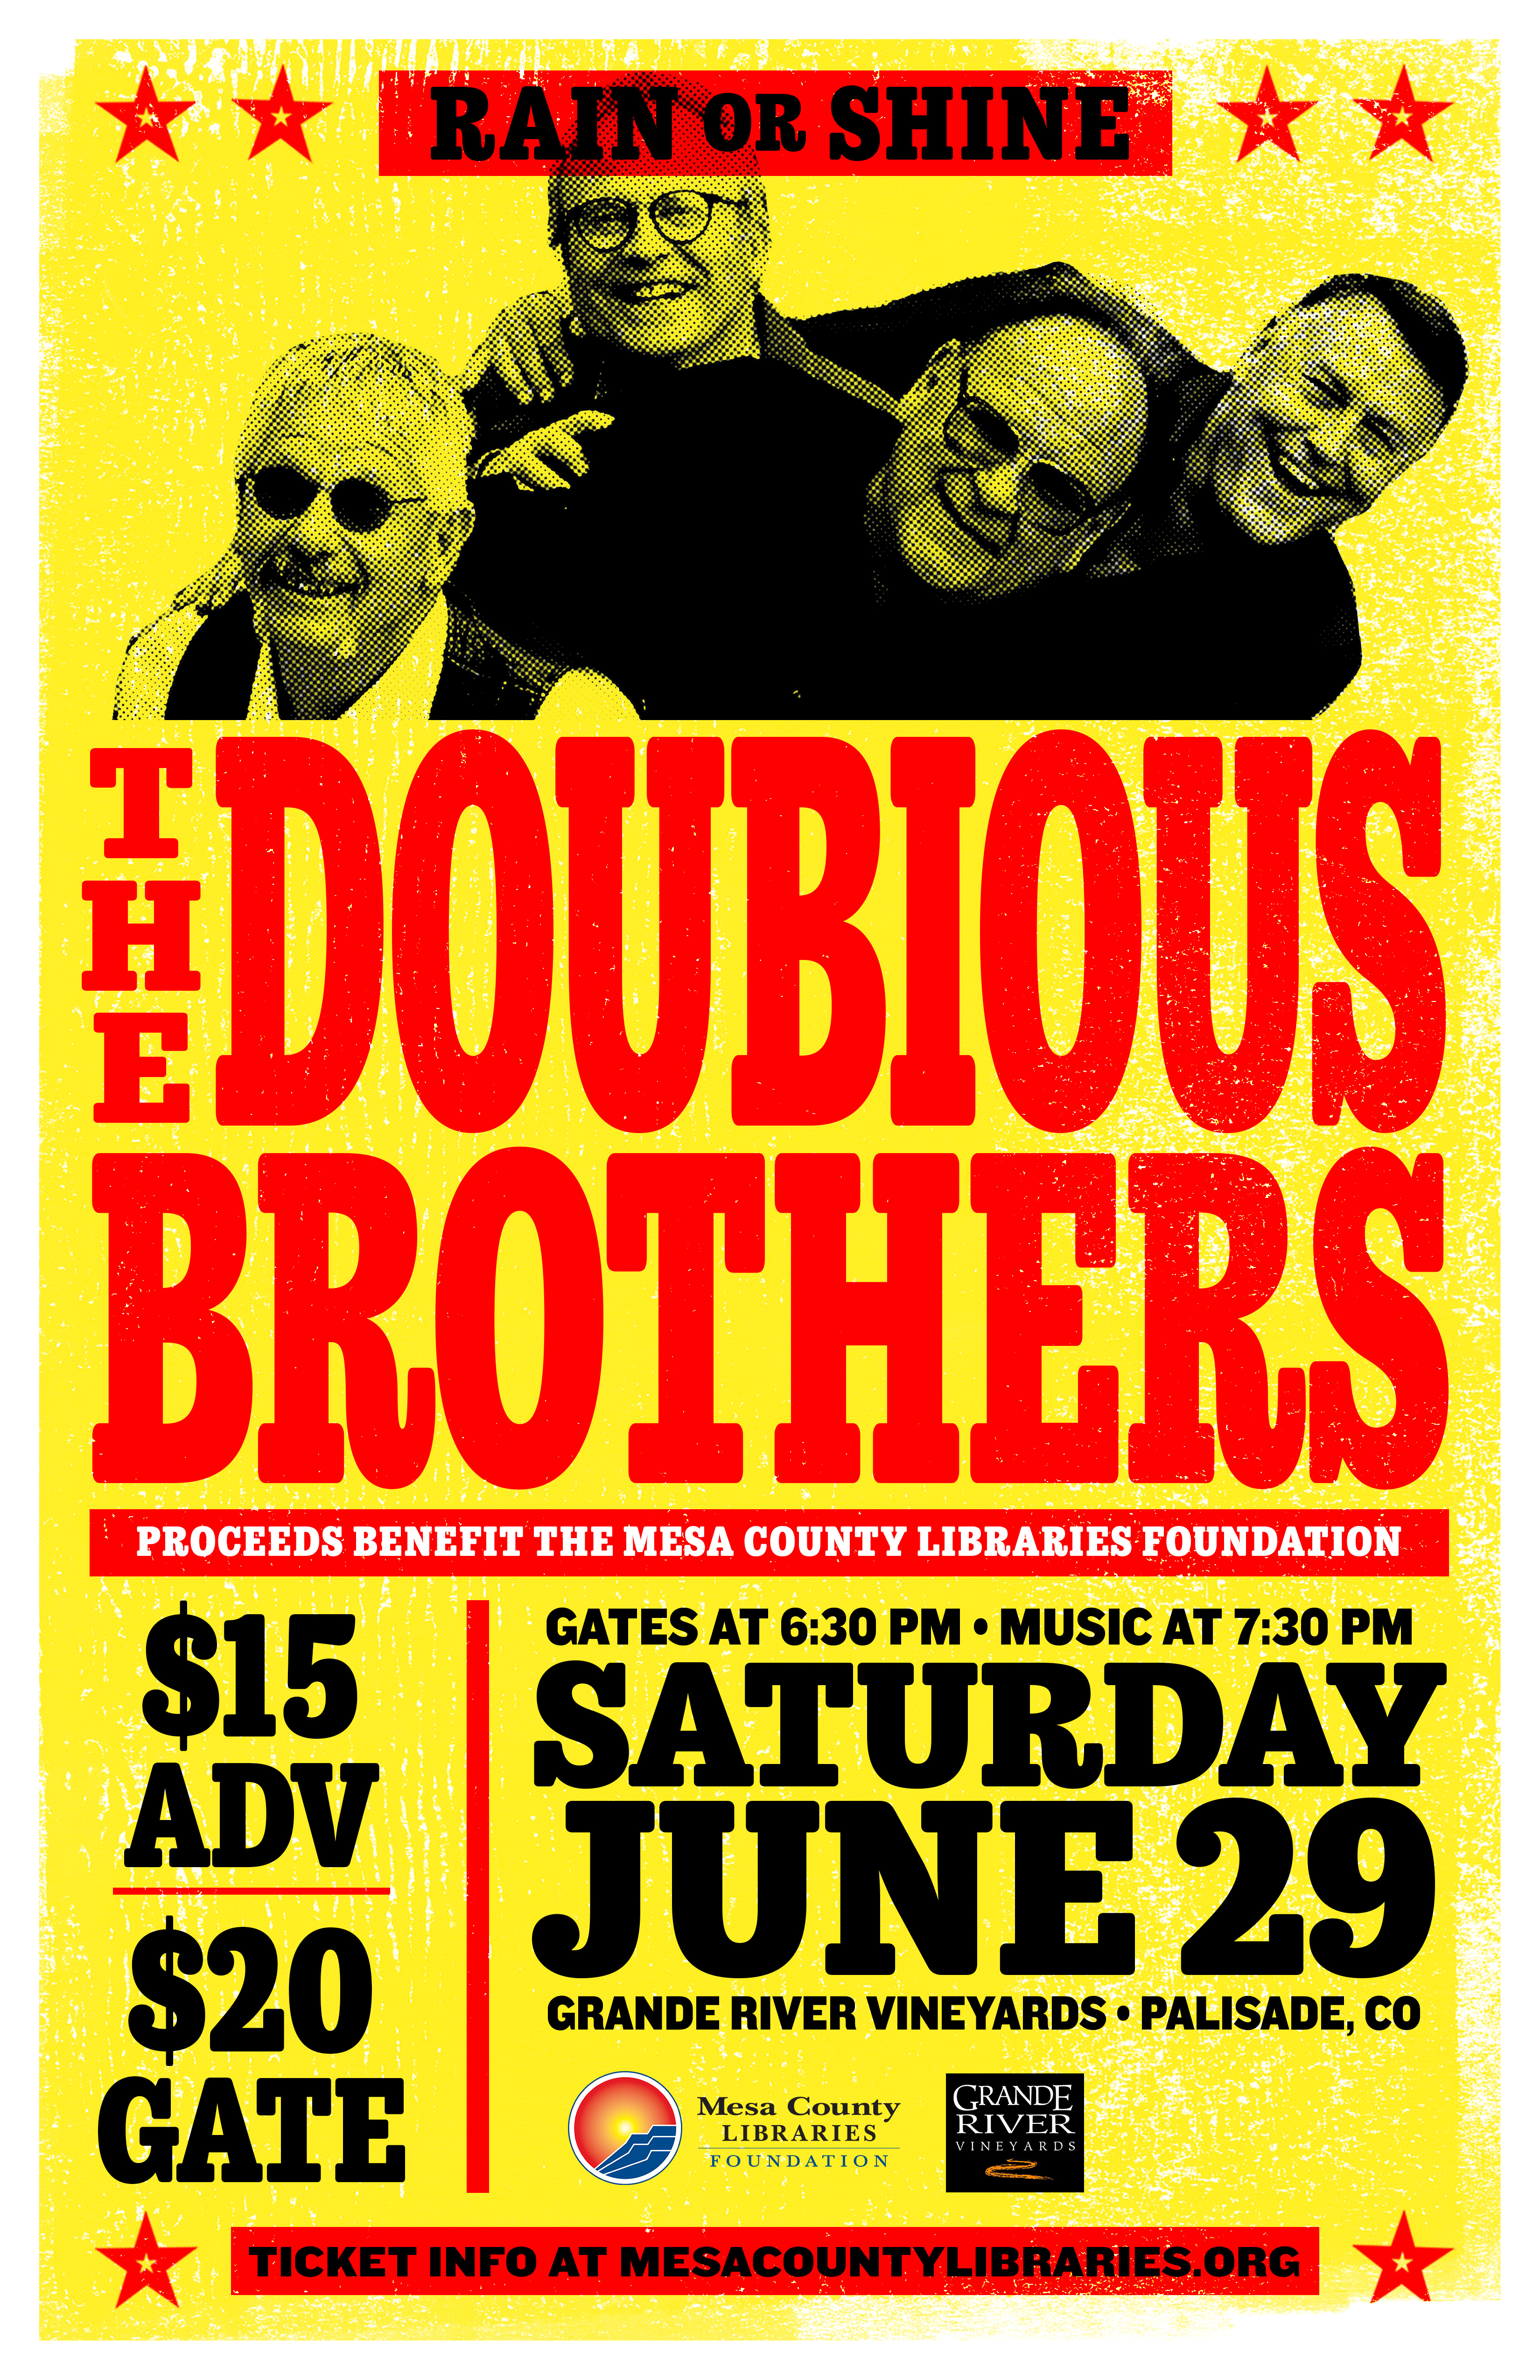 The Doubious Brothers Concert Flyer